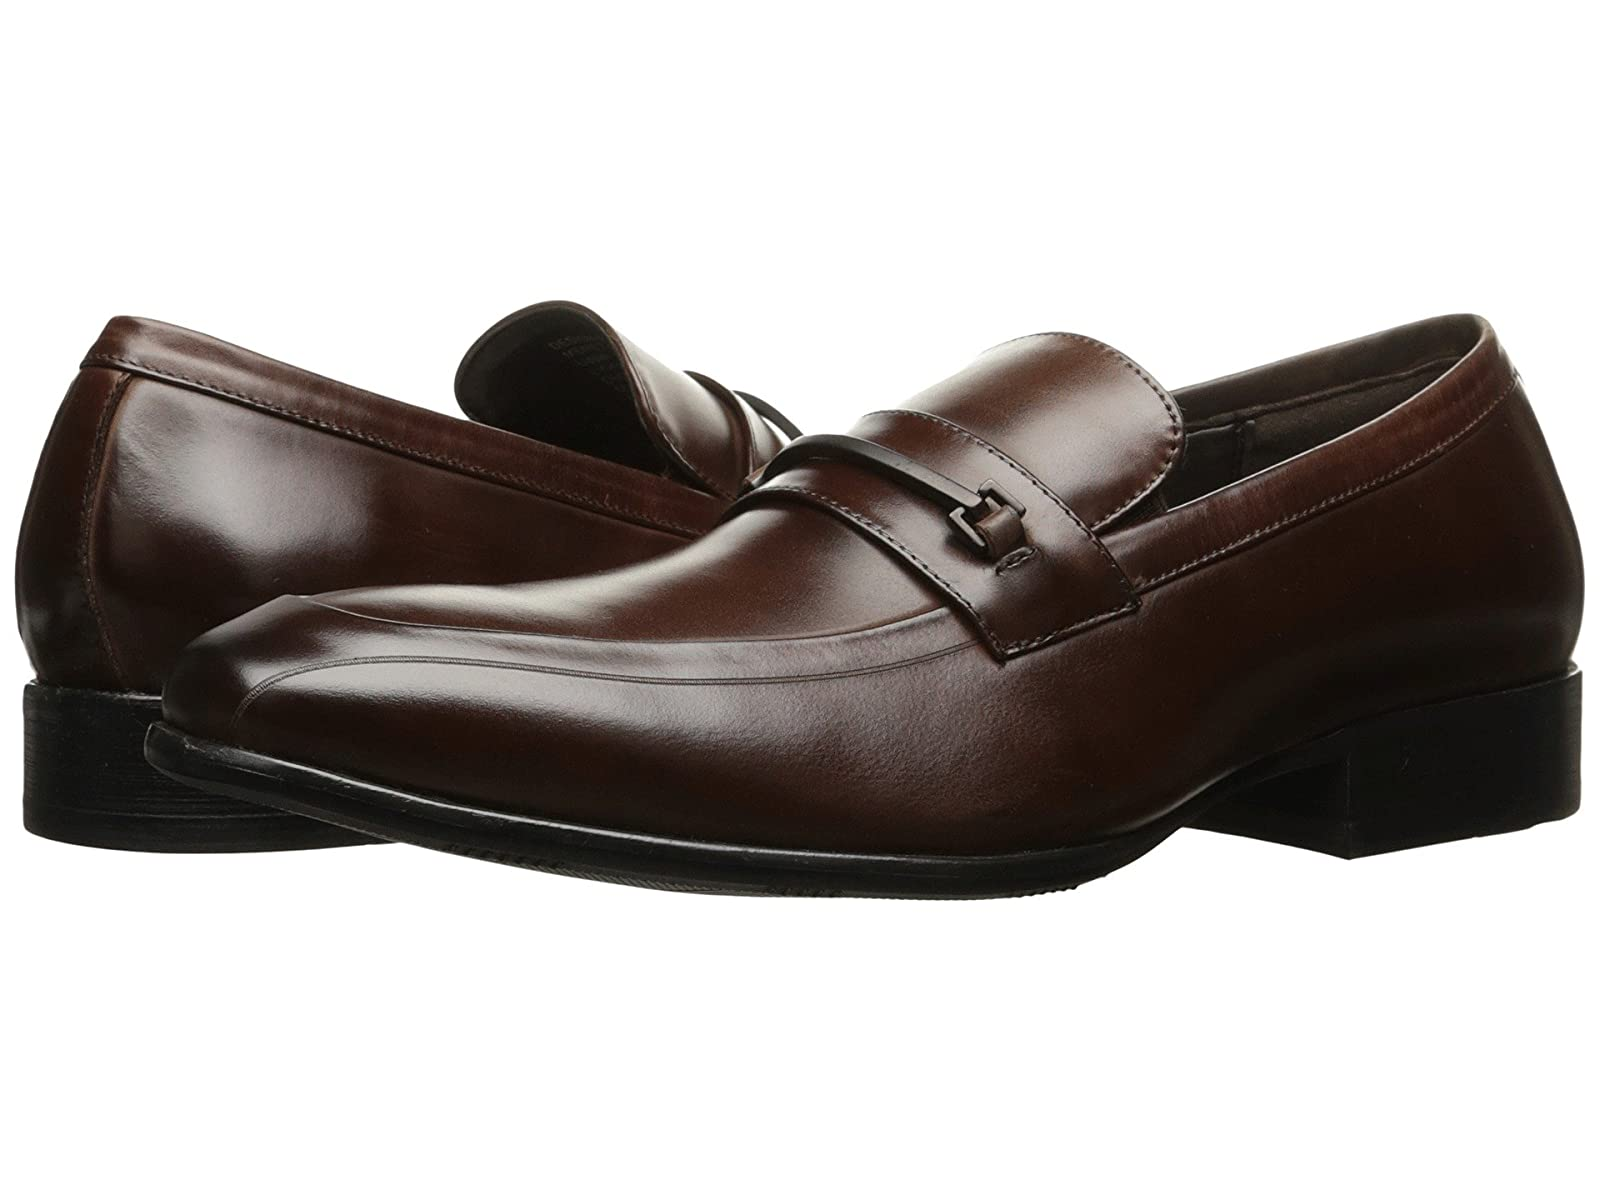 Kenneth Cole New York Design 10082Cheap and distinctive eye-catching shoes